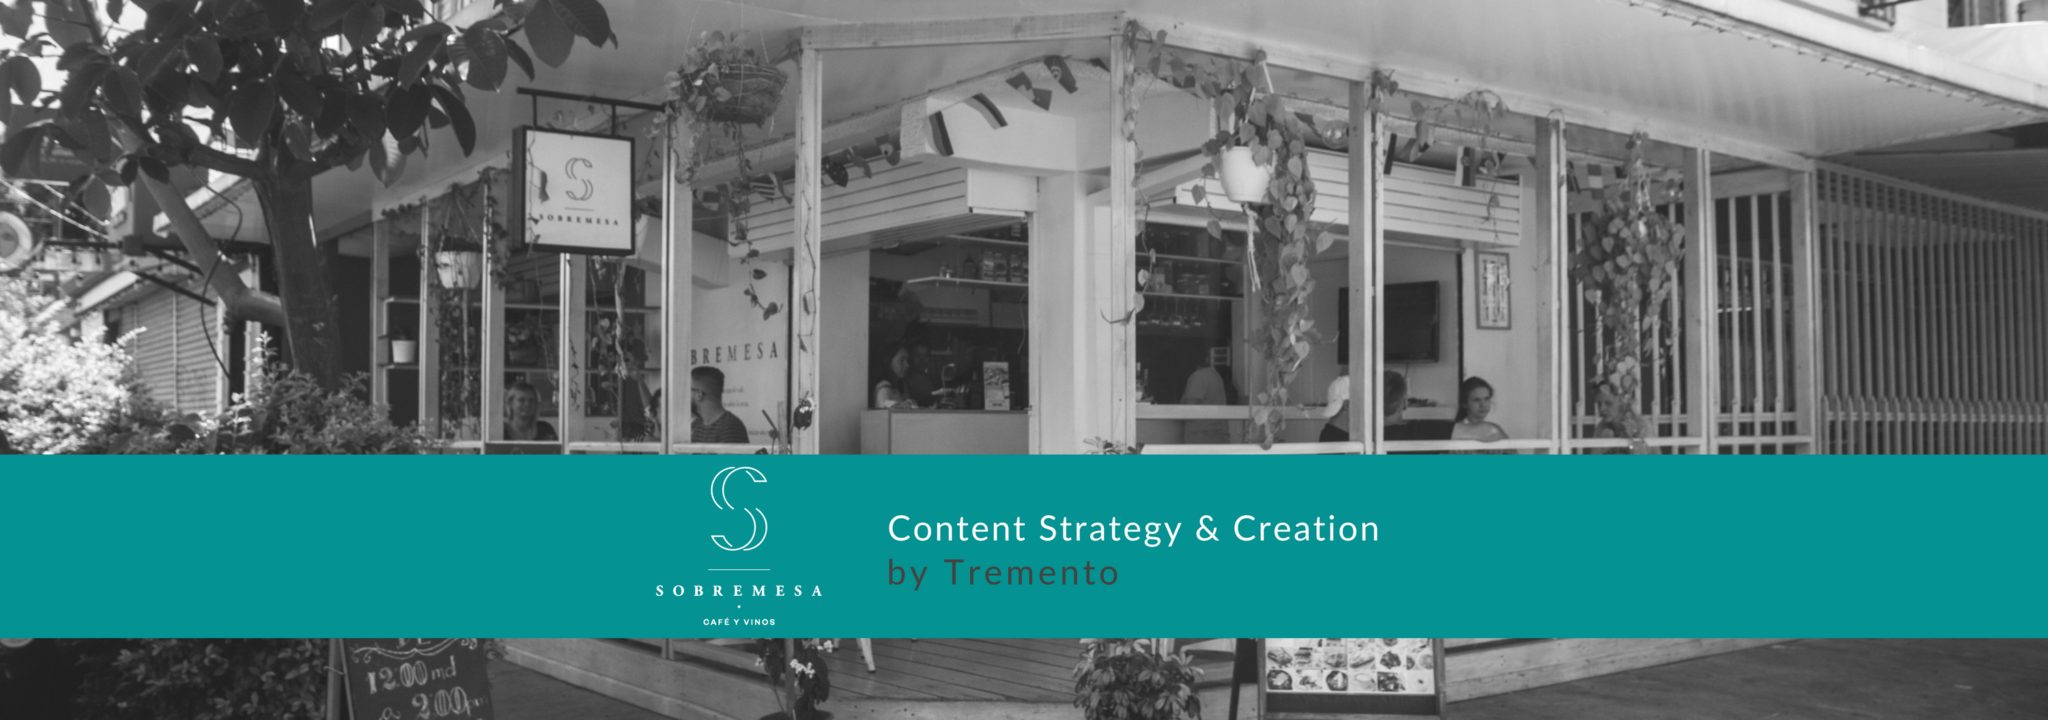 Sobremesa - Tremento Hospitality Content and Strategy Creation